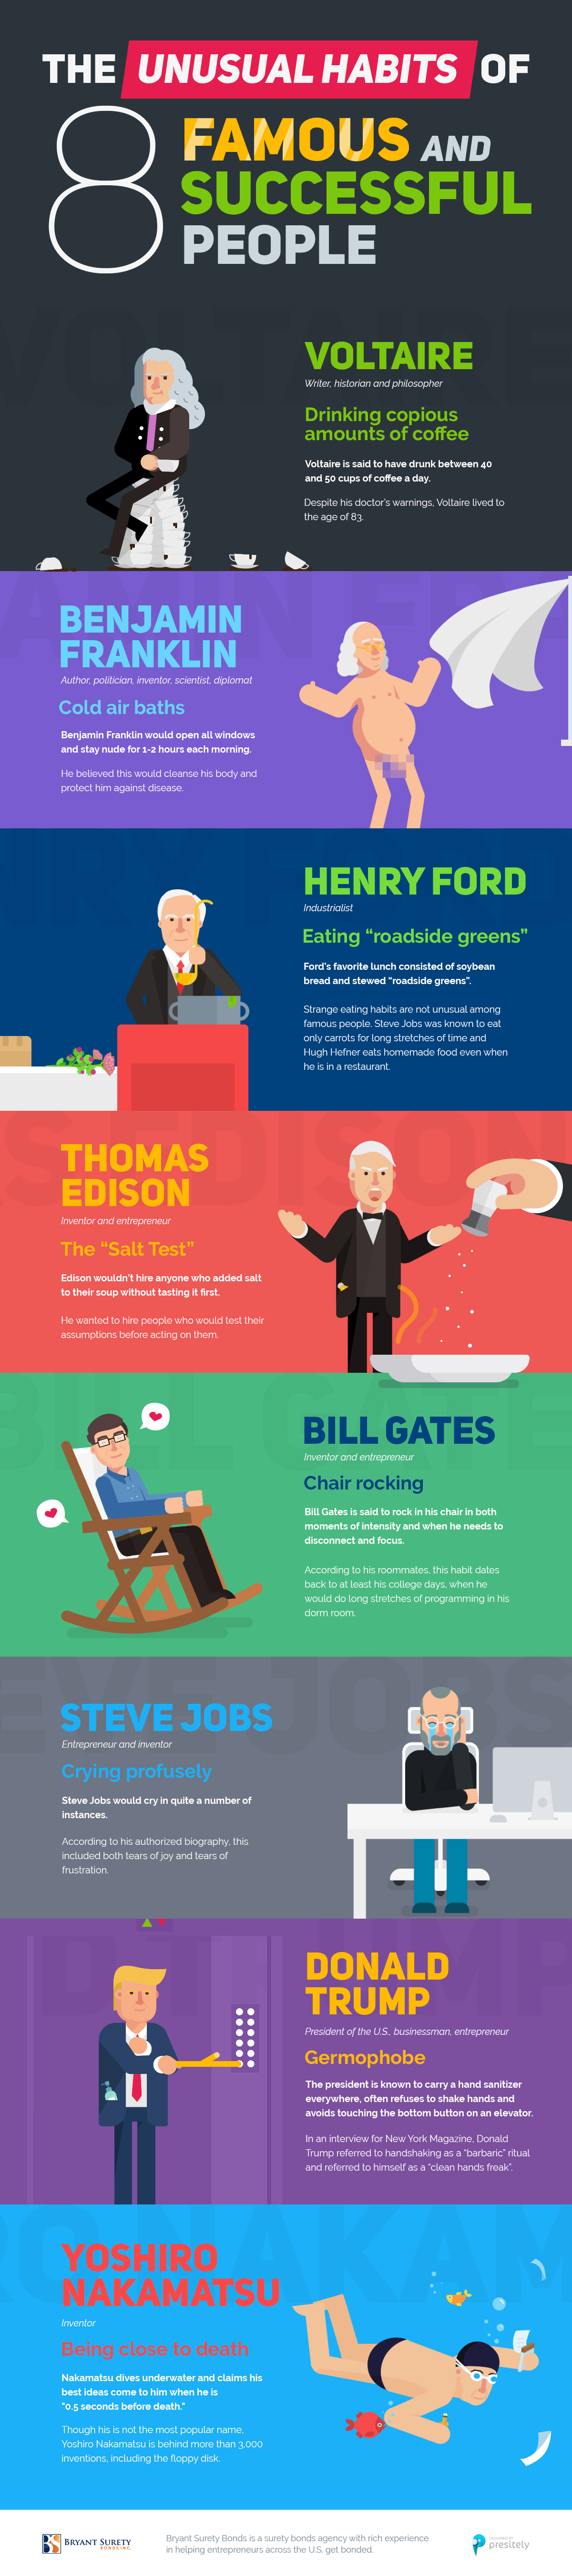 The Unusual Habits of 8 Famous and Successful People